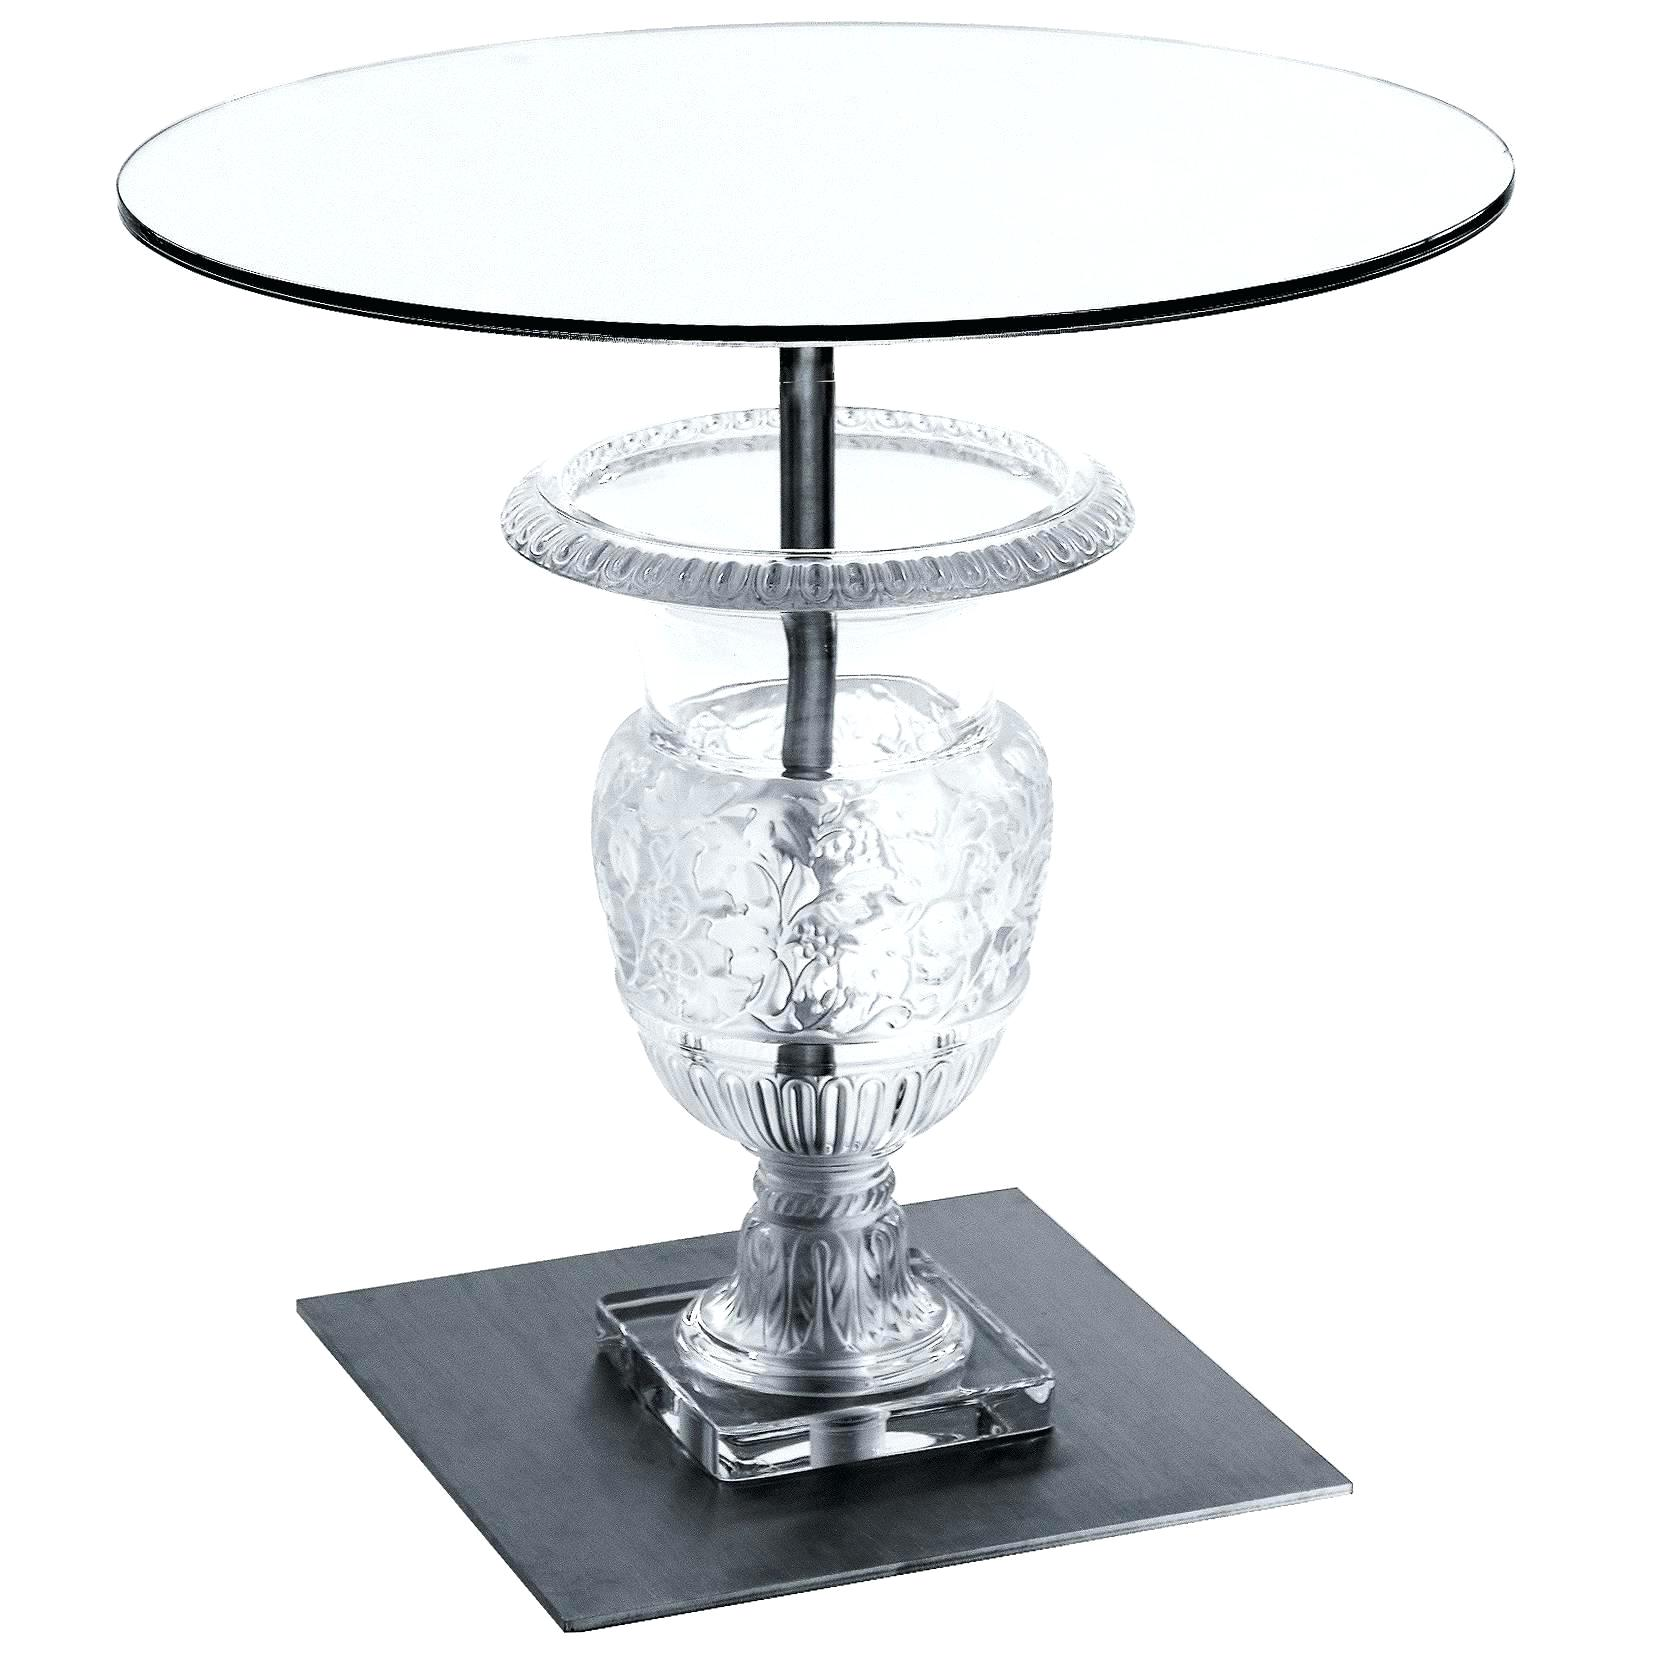 clear accent table crystal pedestal side for acrylic patio chair seat covers bistro tablecloths round white resin wicker basic coffee ceramic end tables set bedside pier one